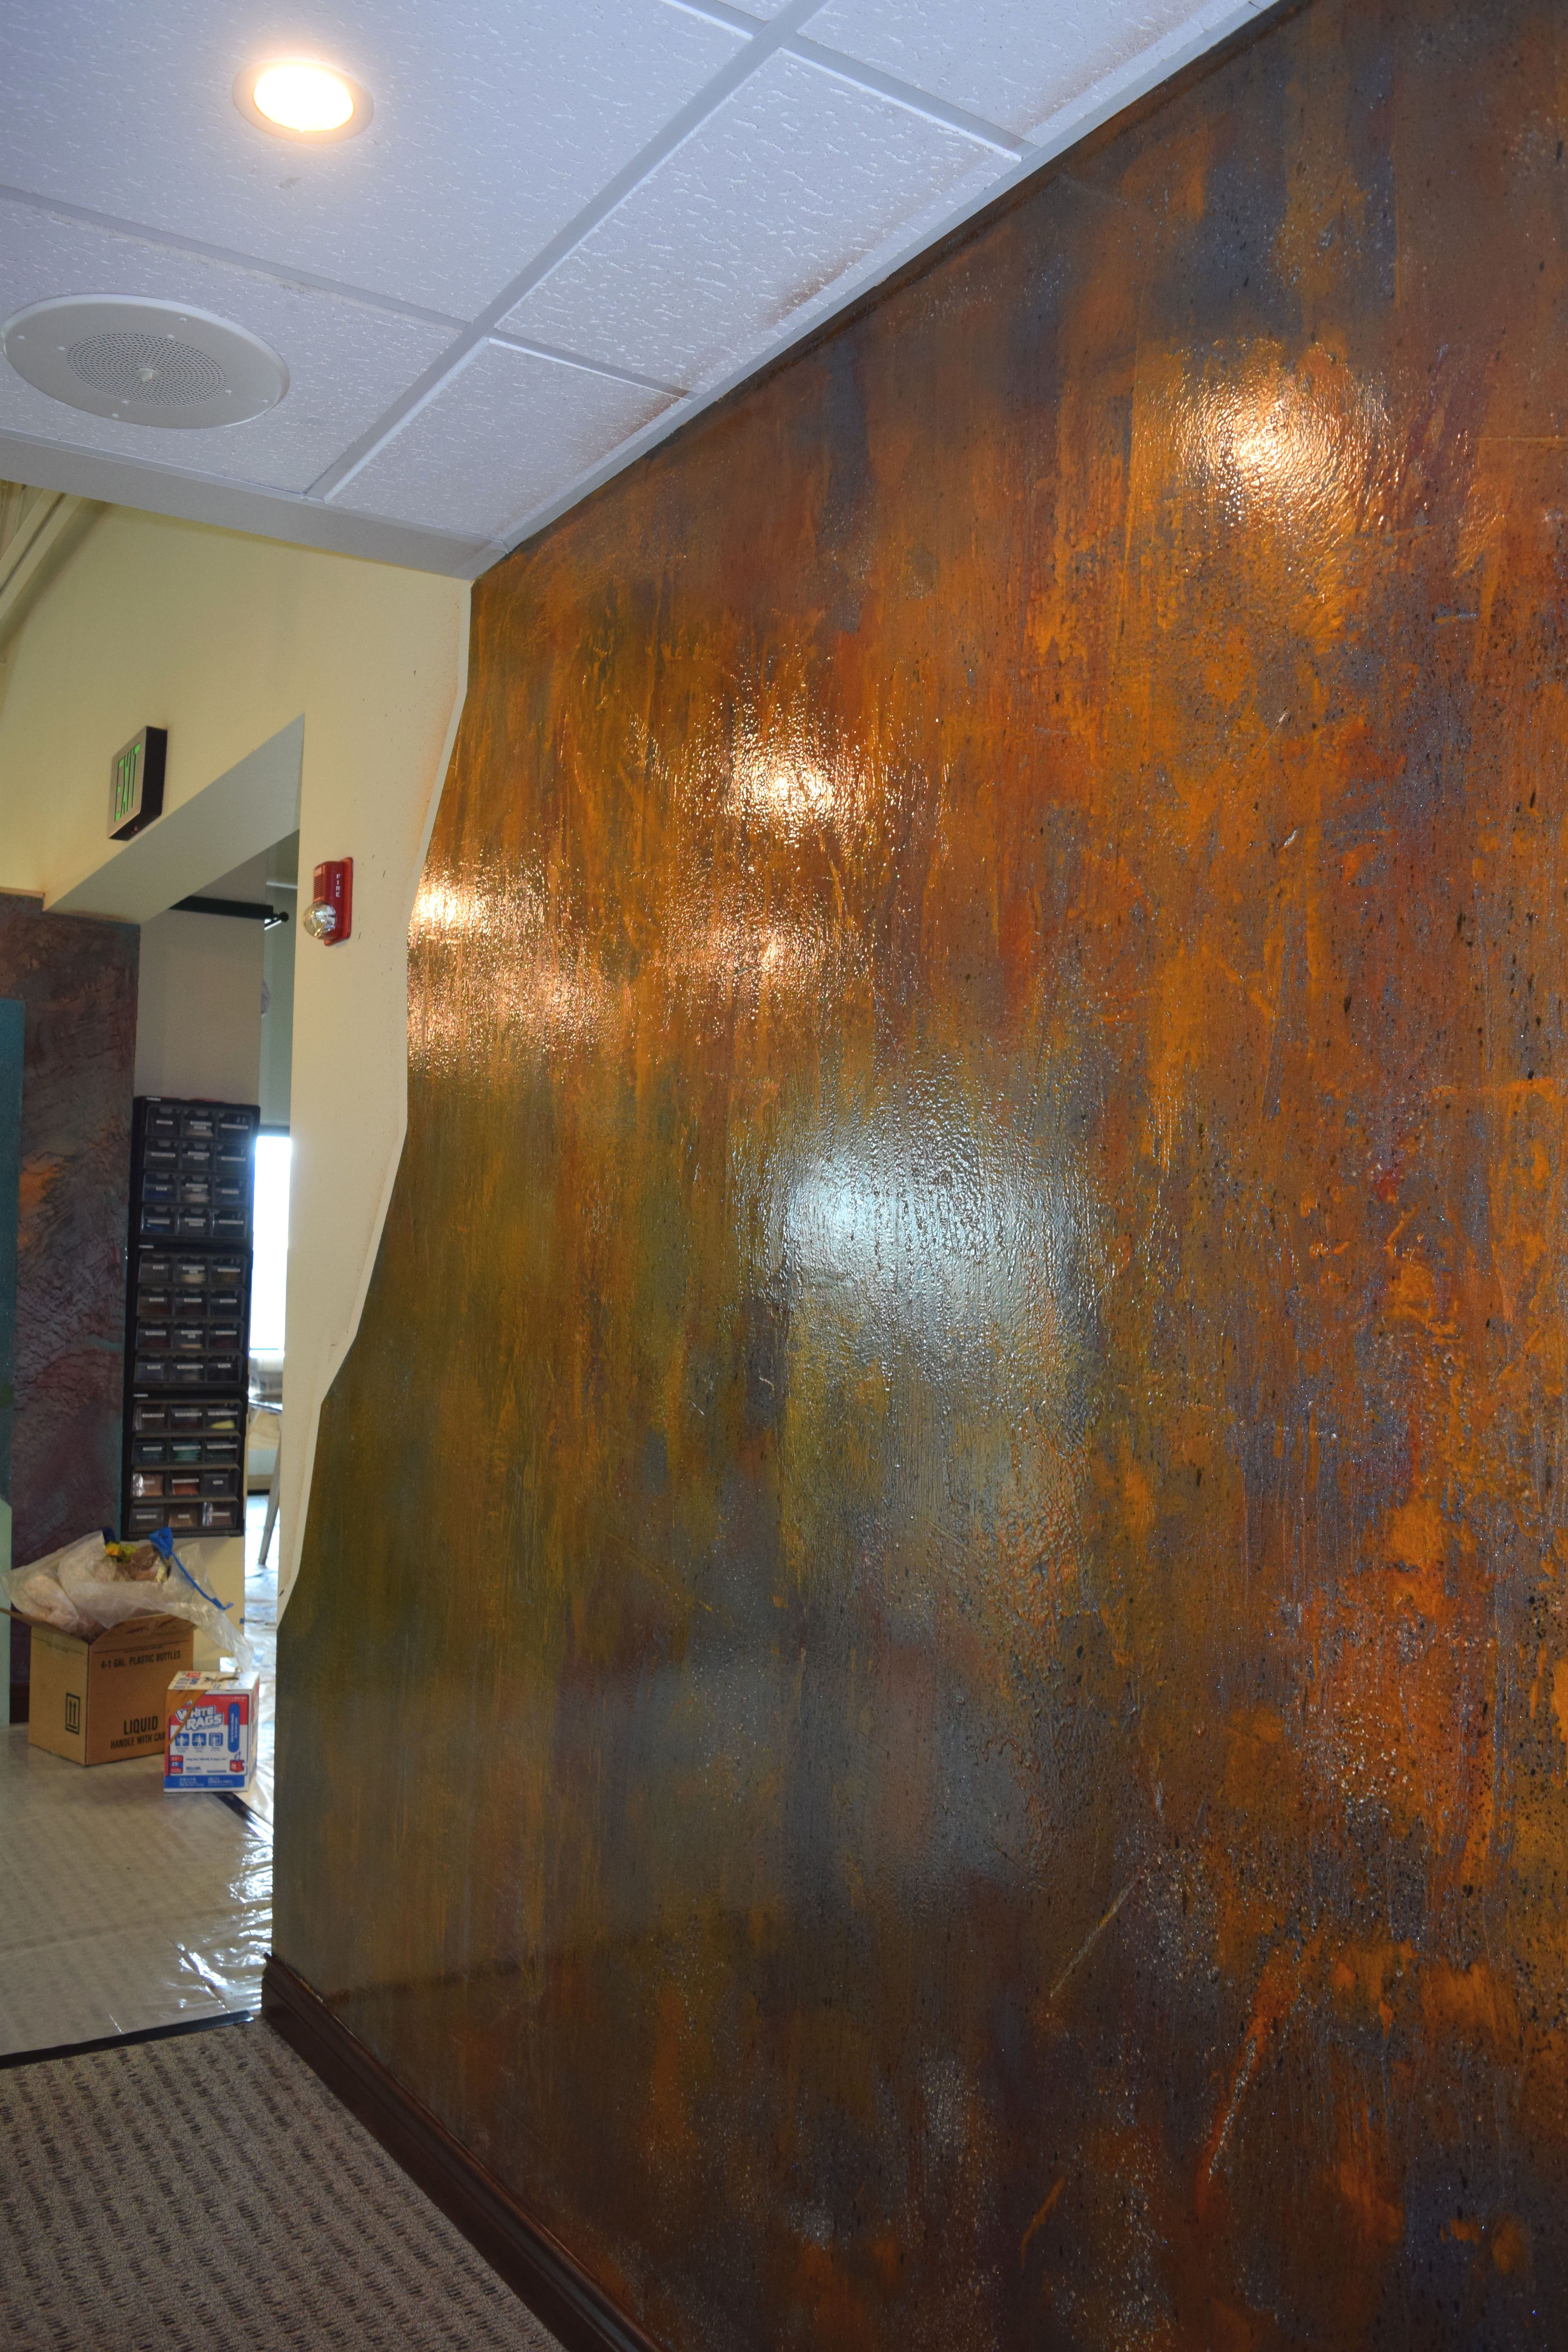 Charcoal Gold And Red Copper Fx Metallic Wall Coating Wall Systems Refinish Countertops Copper Wall